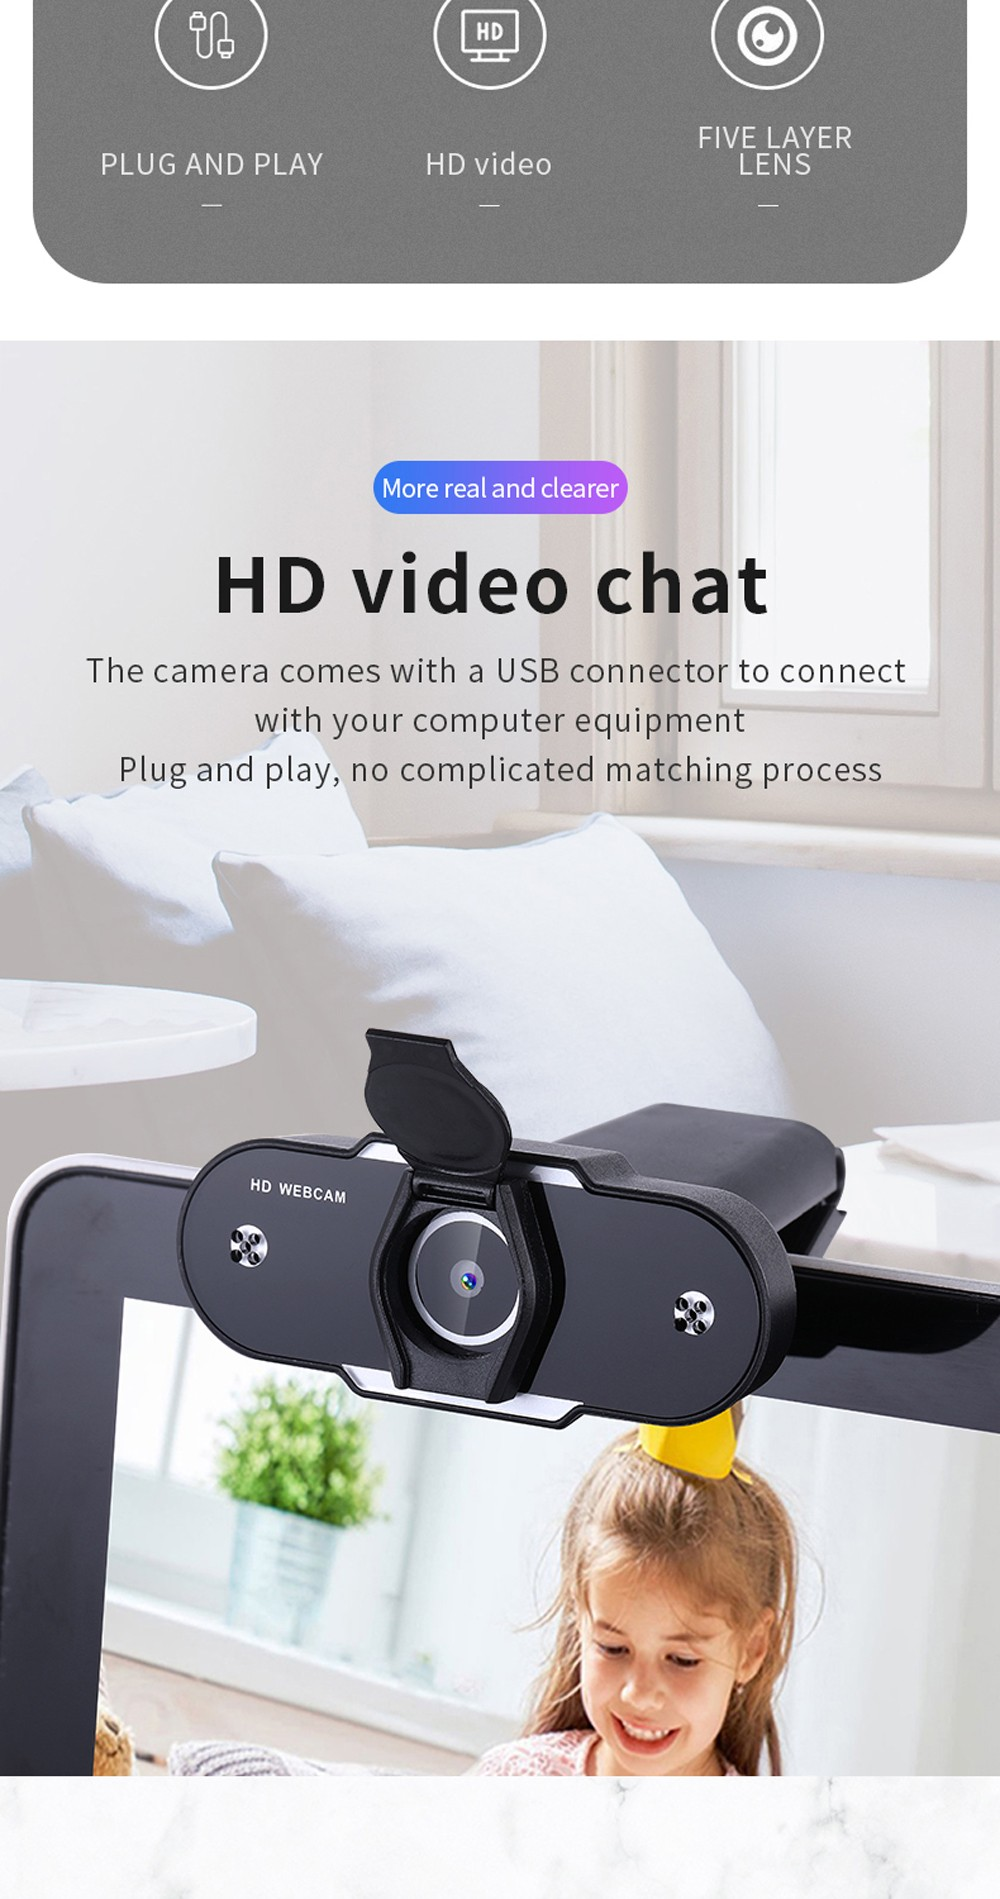 2K 1080P PC Camera Webcam with Microphone - Black With Cover 1080P 1 Million Pixels